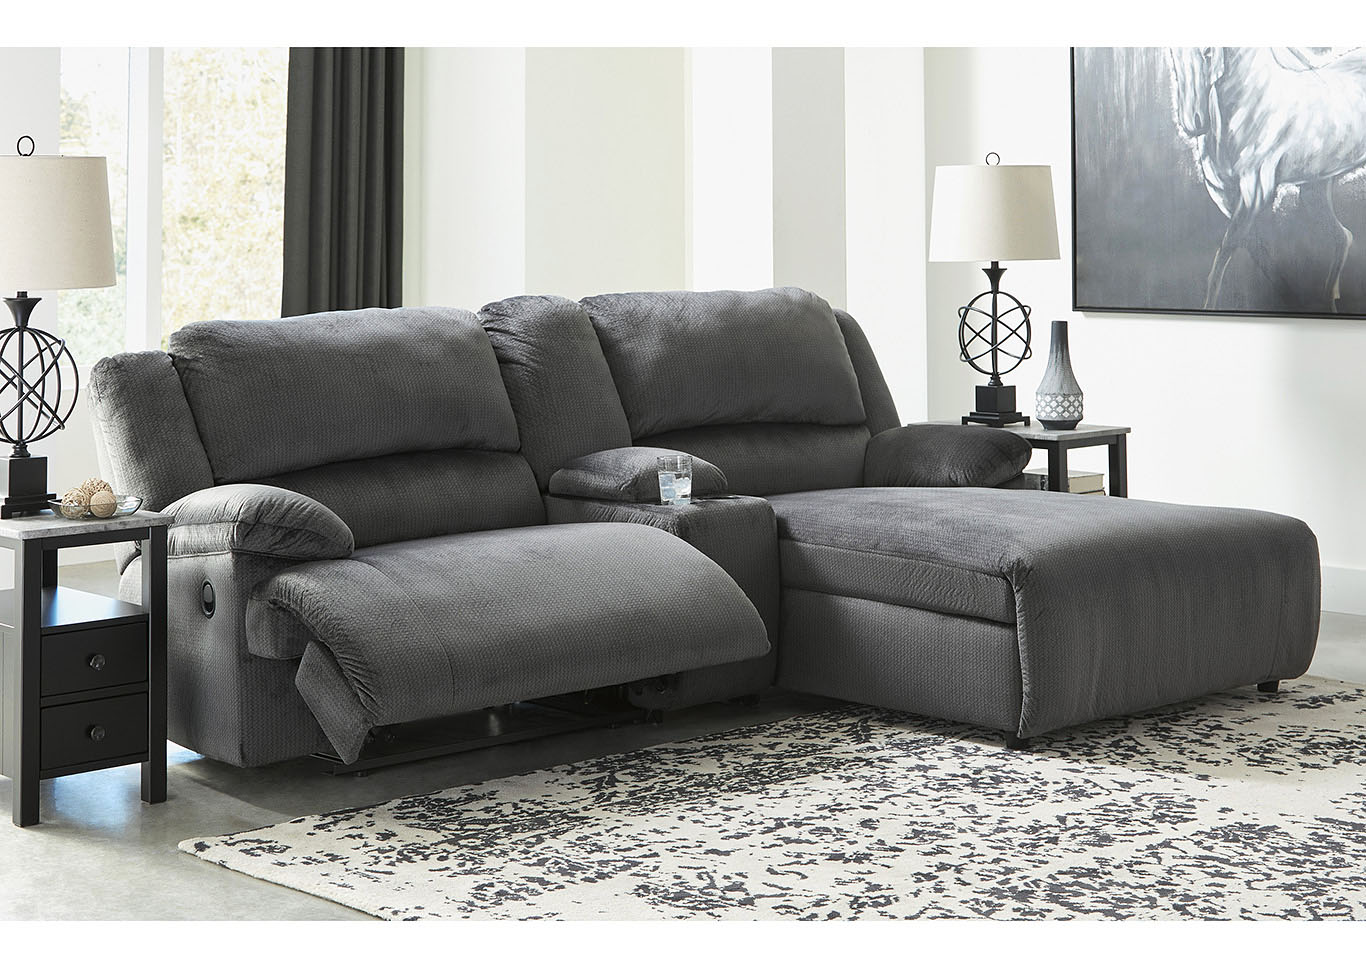 Clonmel Charcoal 3 Piece RAF Power Chaise Sectional w/Console,Signature Design By Ashley